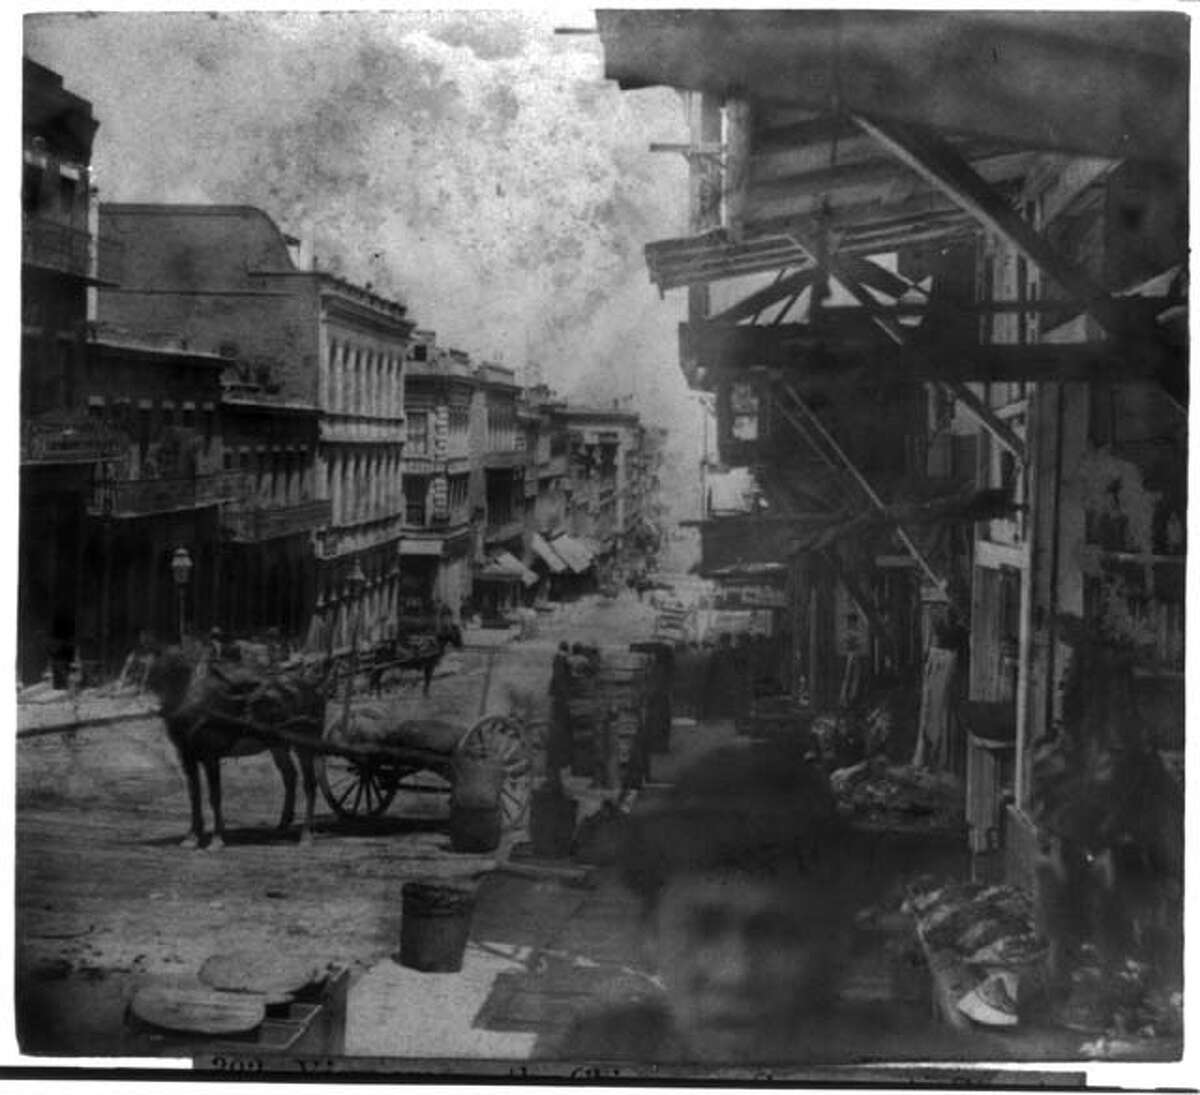 Chinatown, as seen from Sacramento St. This image is particularly haunting thanks to the young man in the foreground.